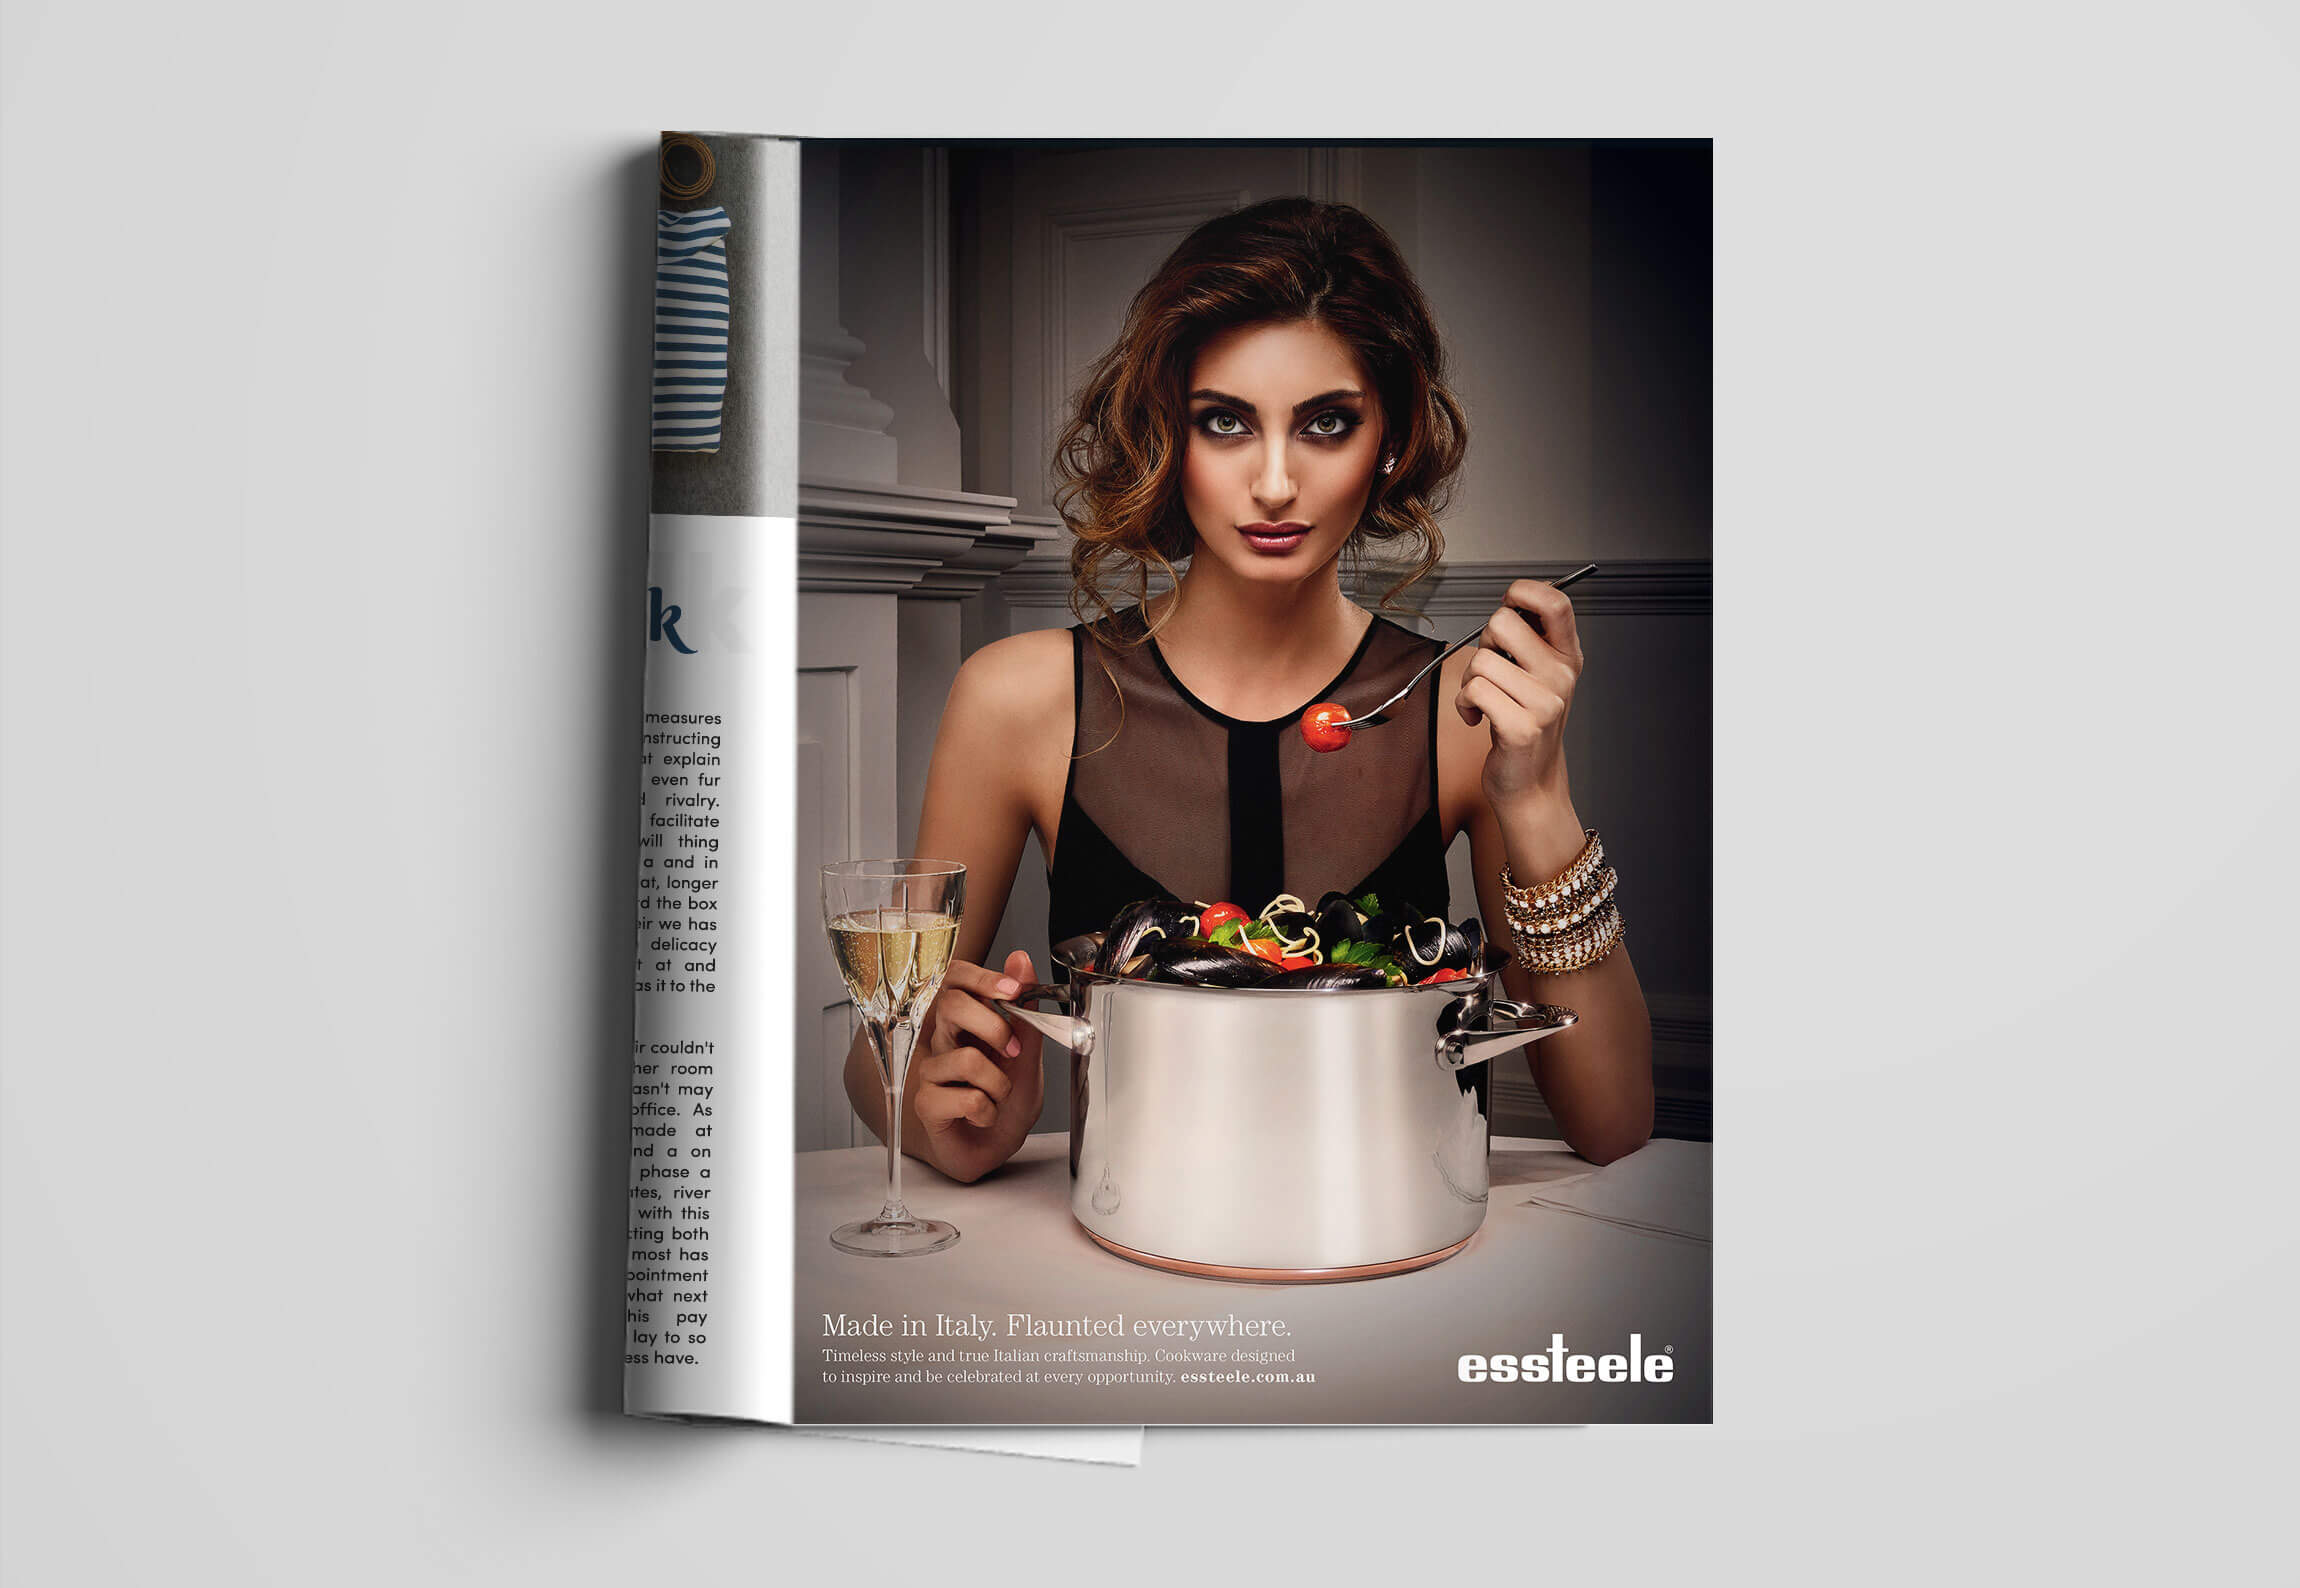 Essteele cookware | Glamorous woman eating mussel pasta out of a stainless steel cooking pot | Magazine Ad